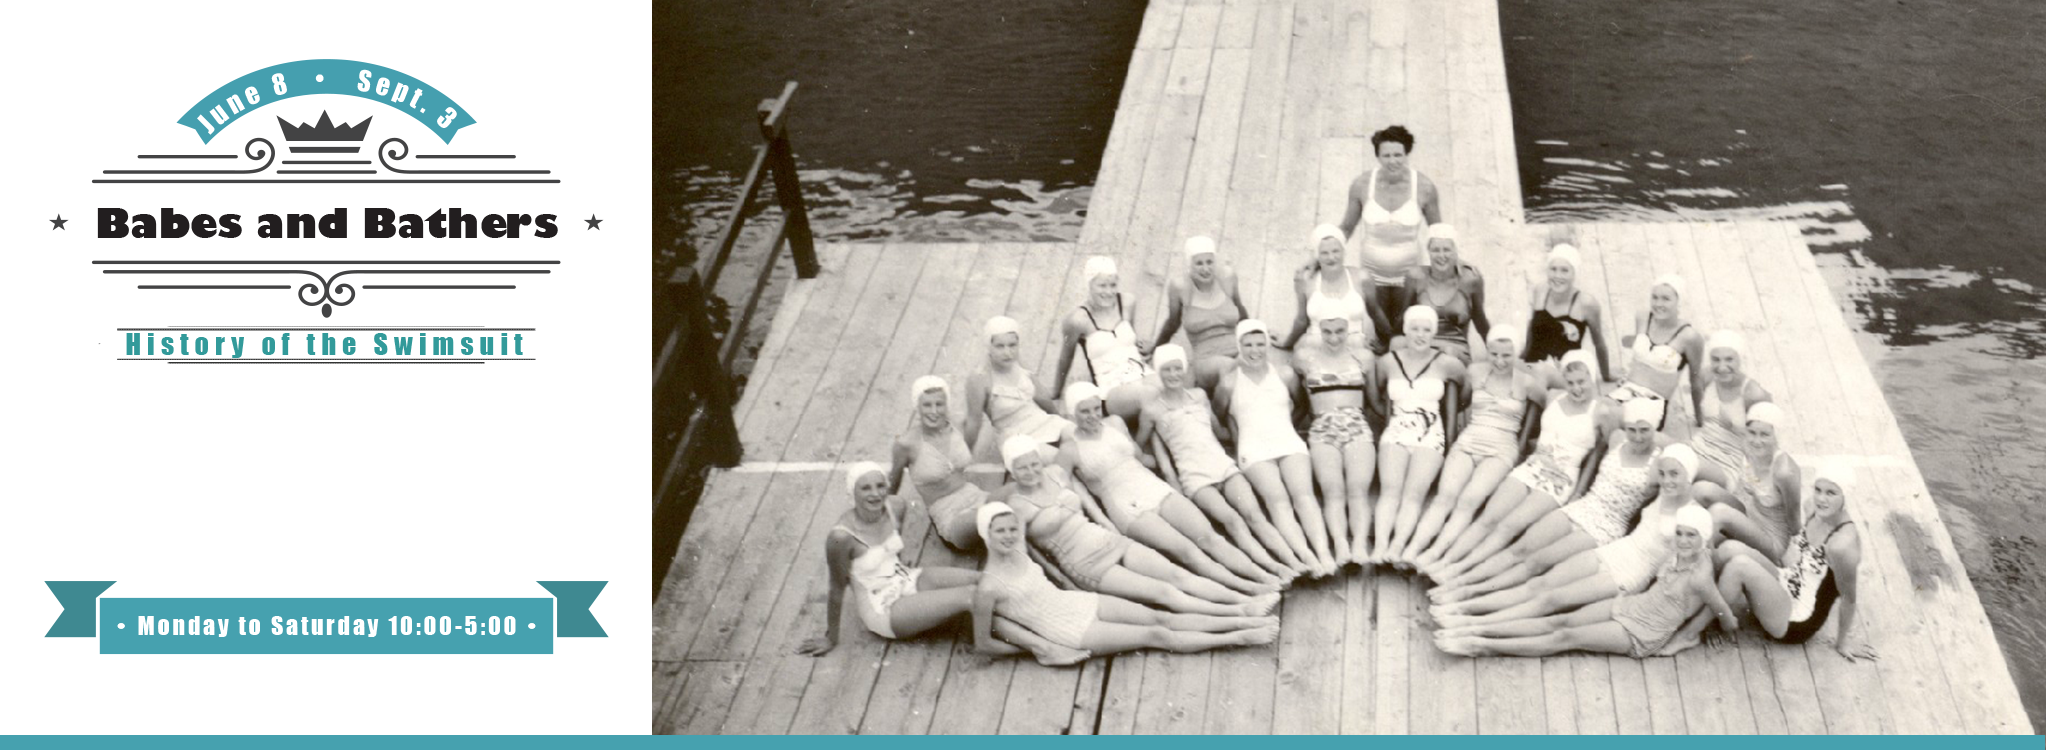 KelownaMuseums 2018 Exhibits BabesBathers 2046x750 v2 Babes and Bathers: History of the Swimsuit